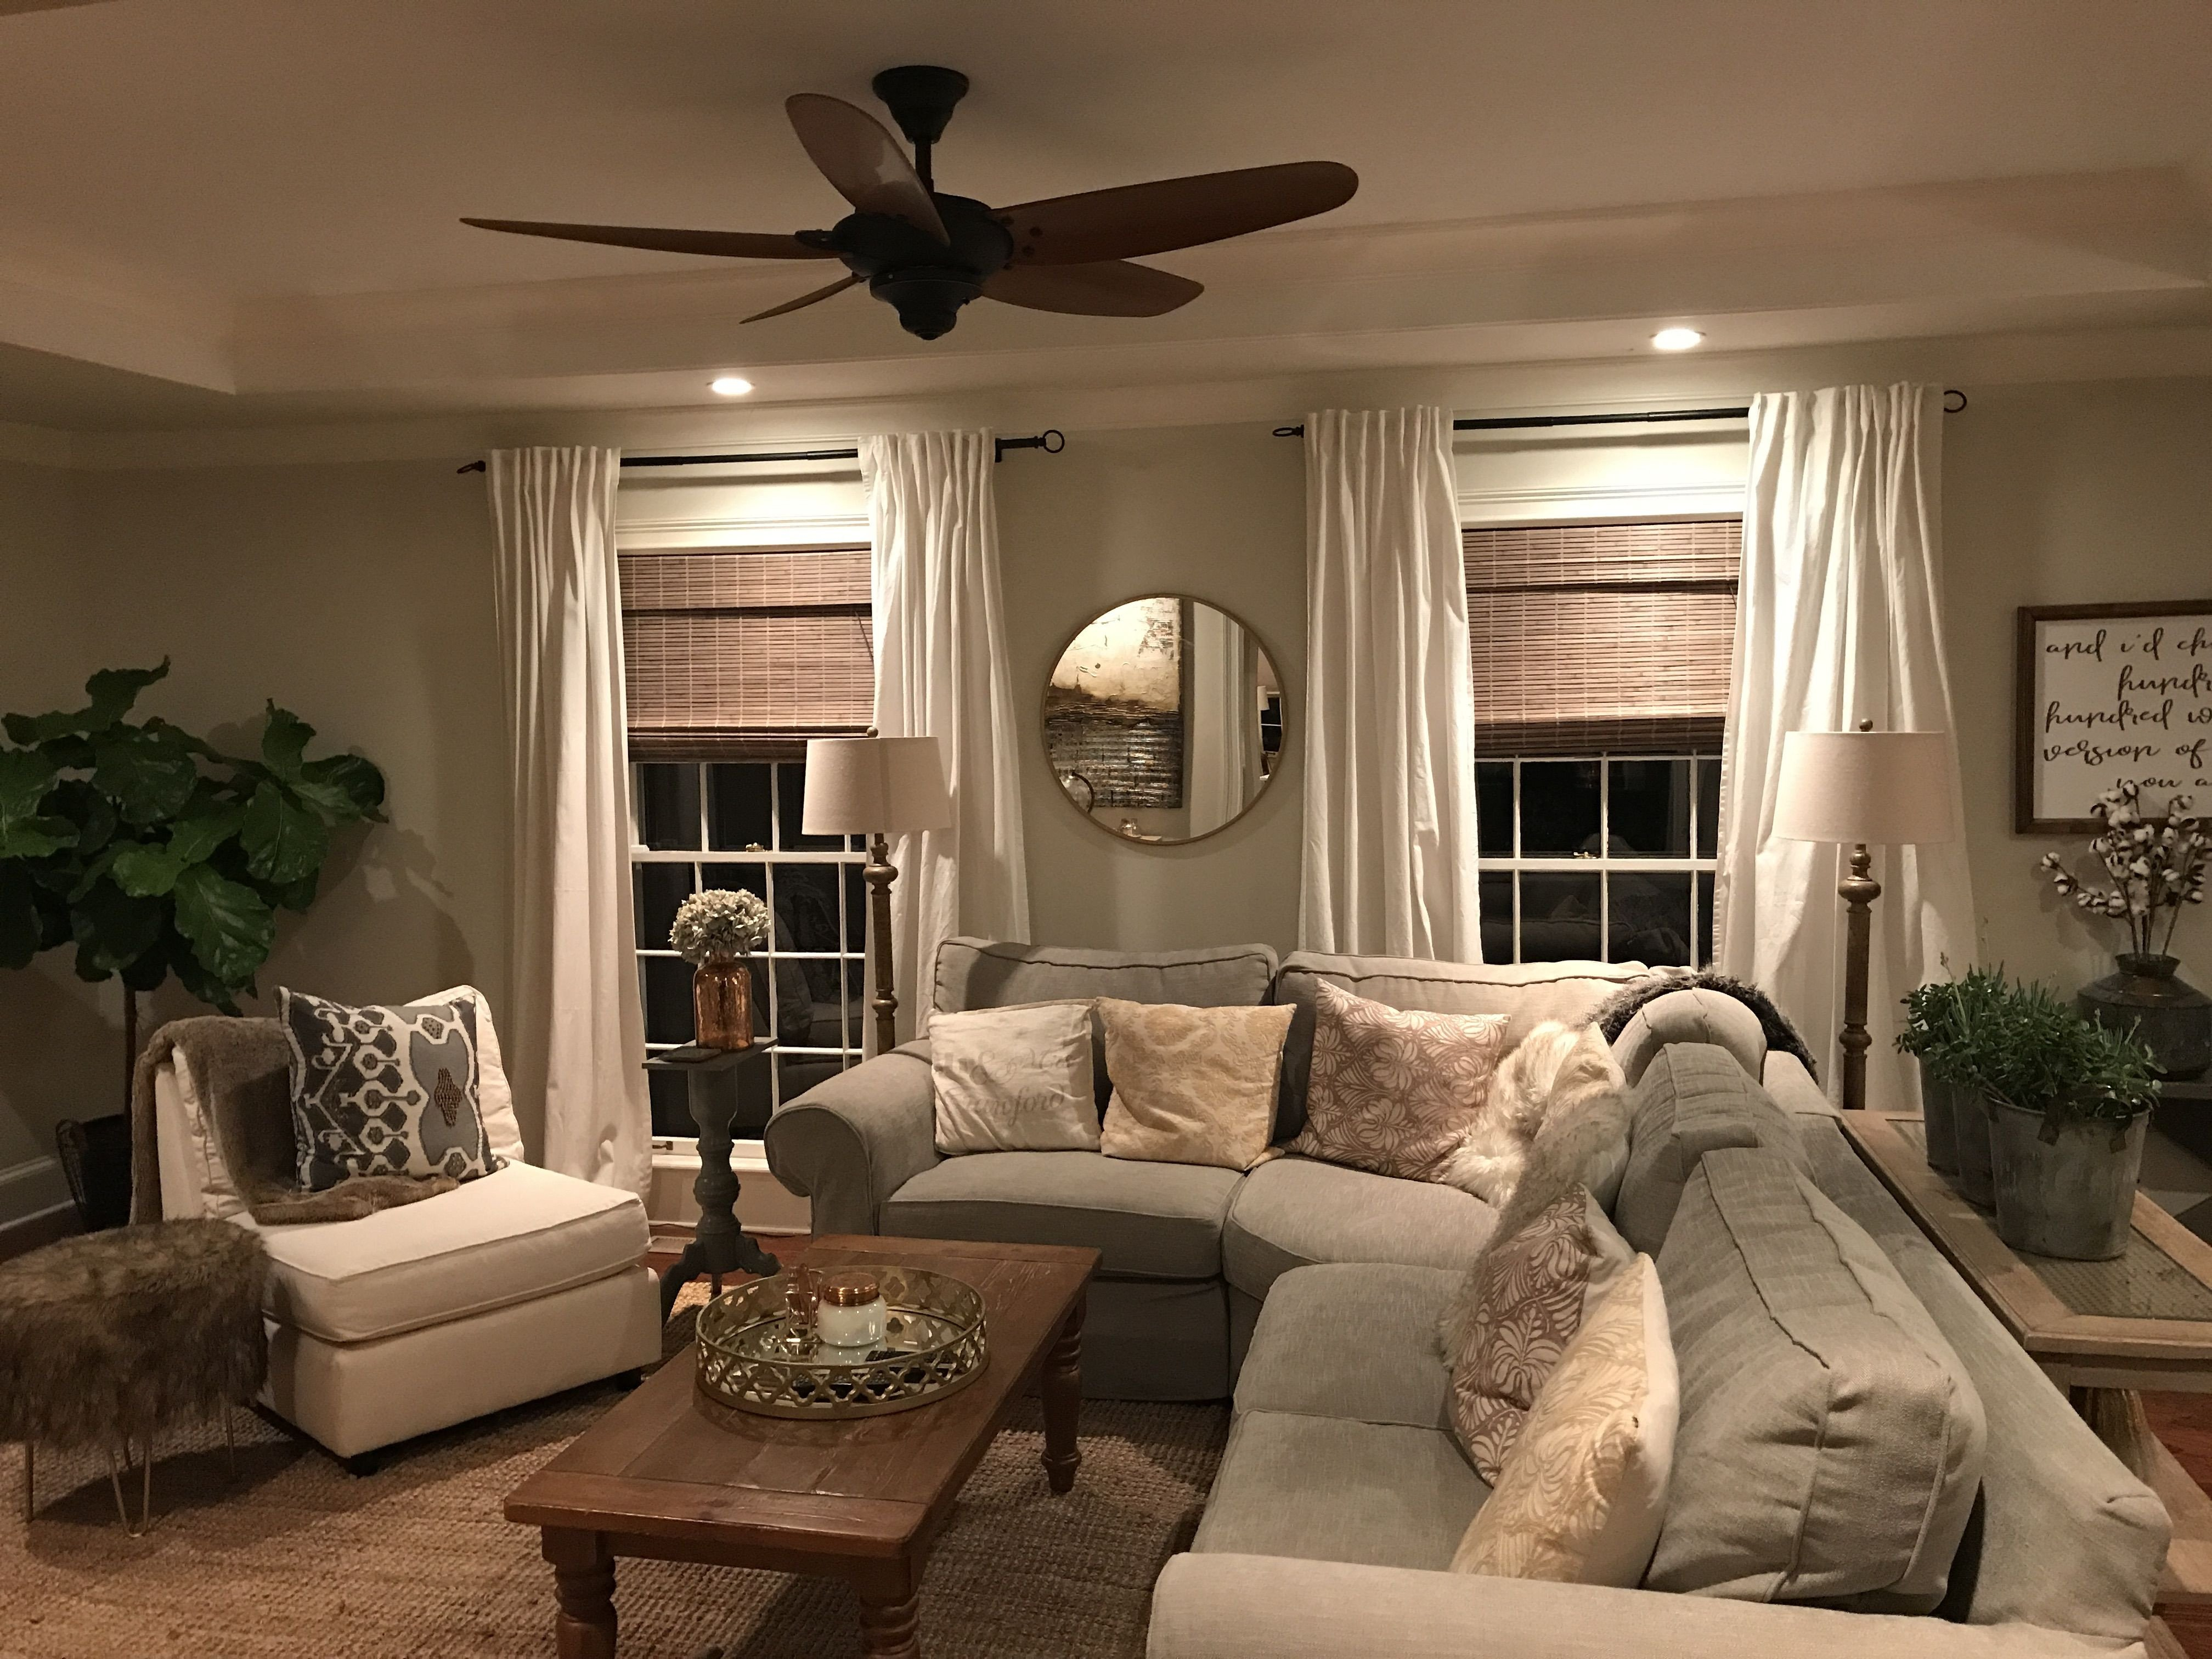 Farmhouse Living Room Curtains Decor Ideas Lovely Cozy Modern Farmhouse Family Room with A Natural Jute Rug Grey Slip Covered sofa Woven Wood